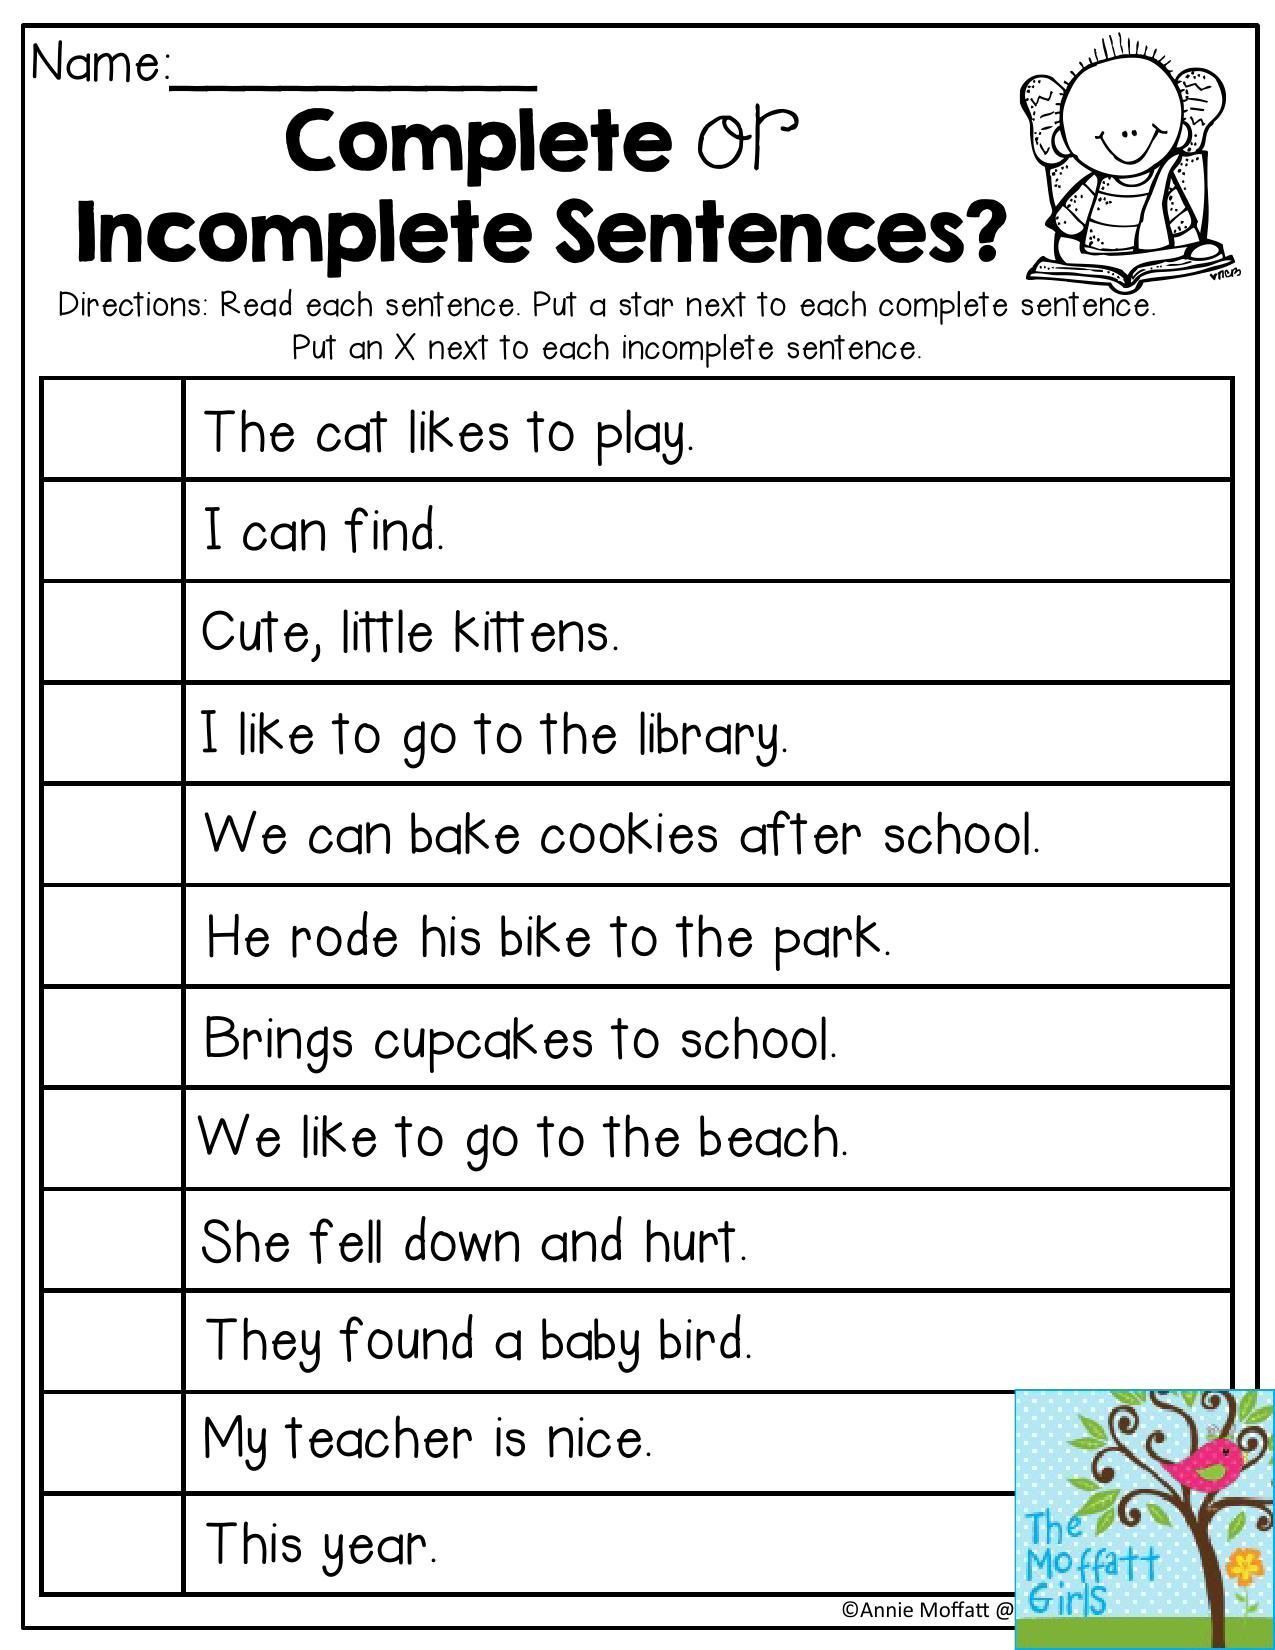 Complete Sentence Worksheets 1st Grade Back to School Packets